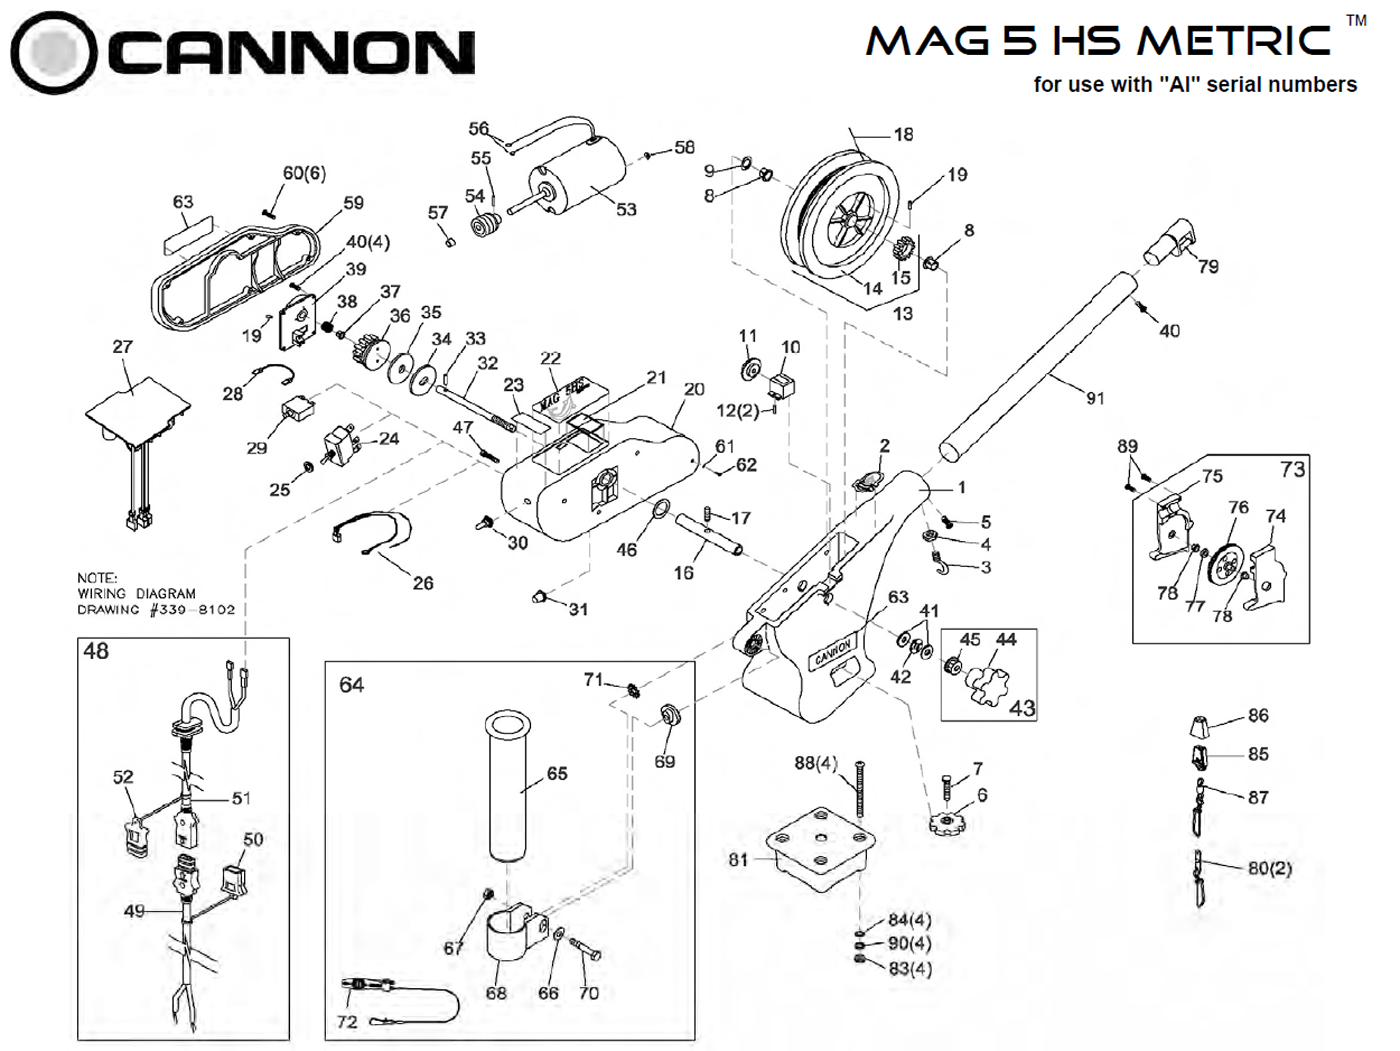 Order Cannon Metric Mag 5 Hs Electric Downrigger Parts